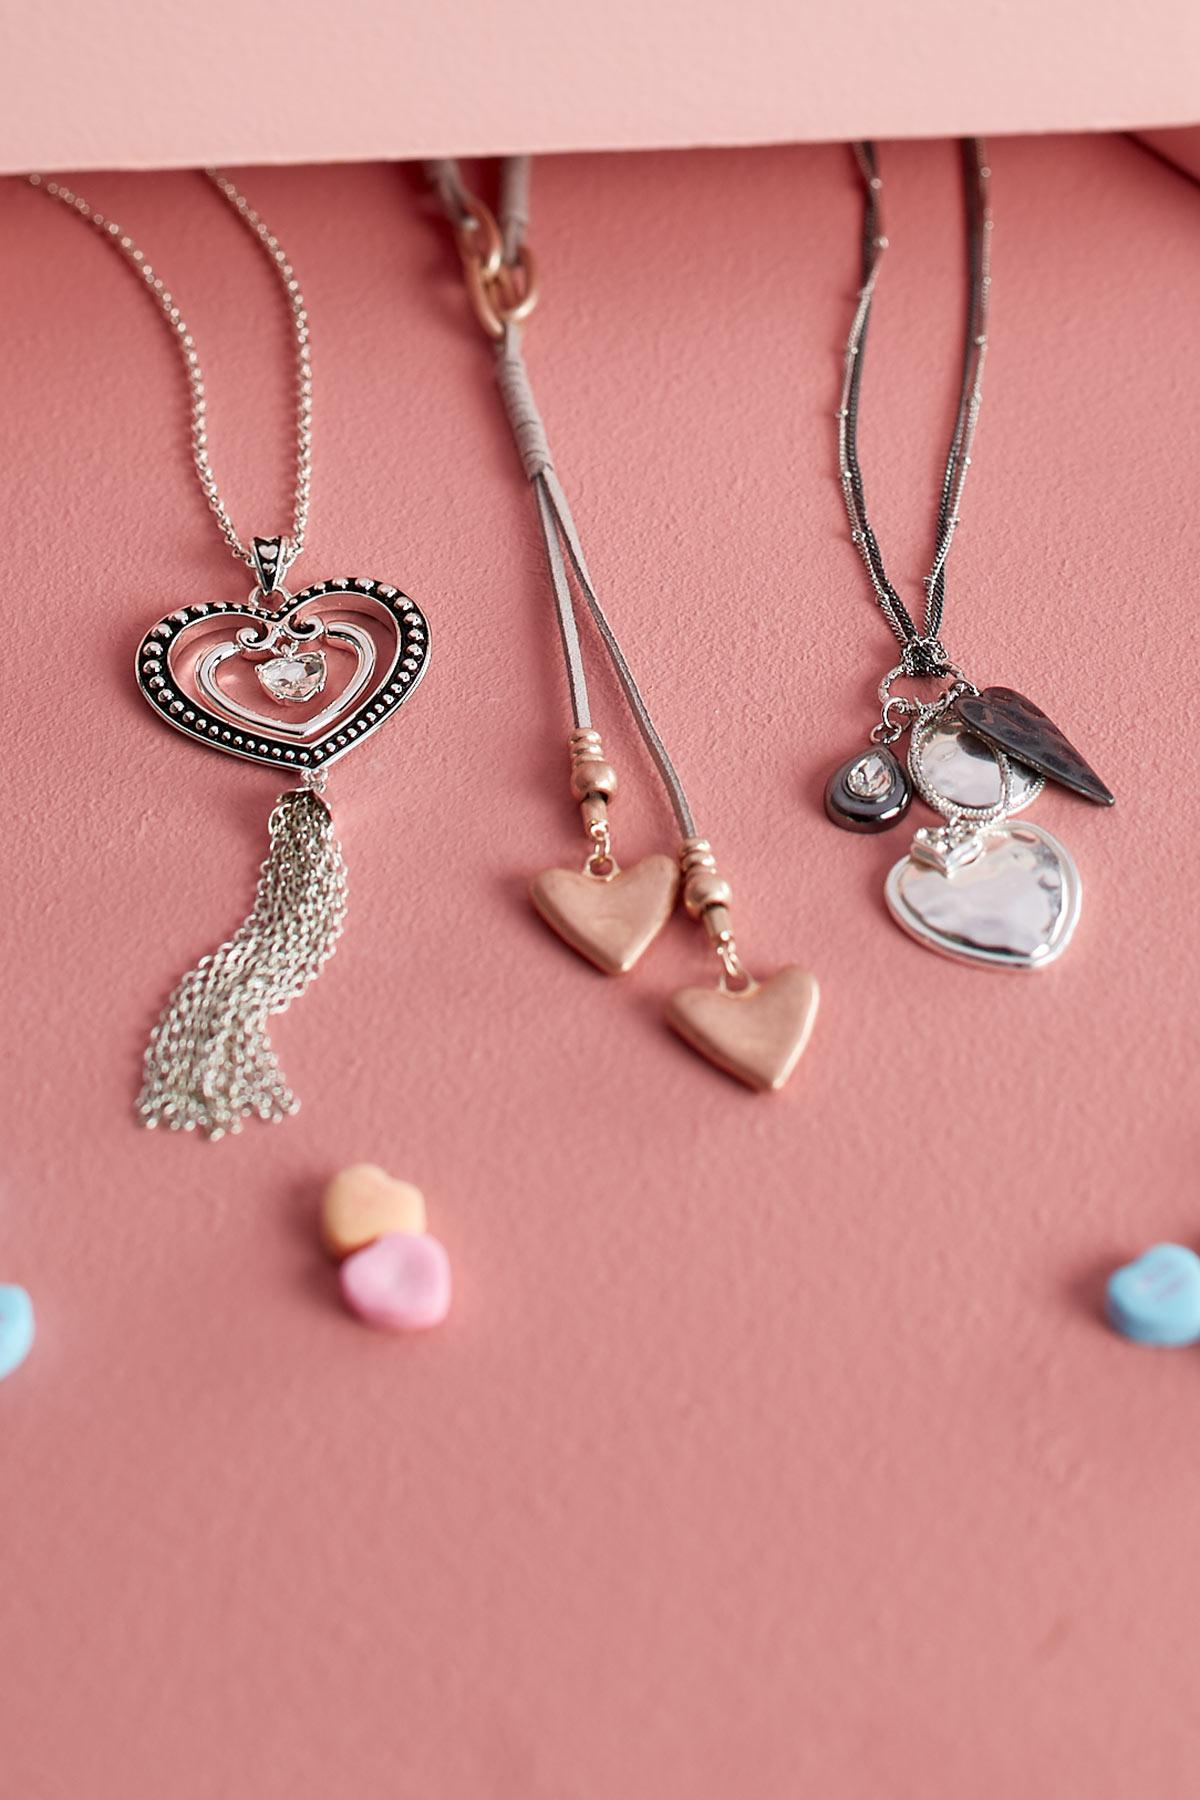 Tasseled Heart Pendant Necklace